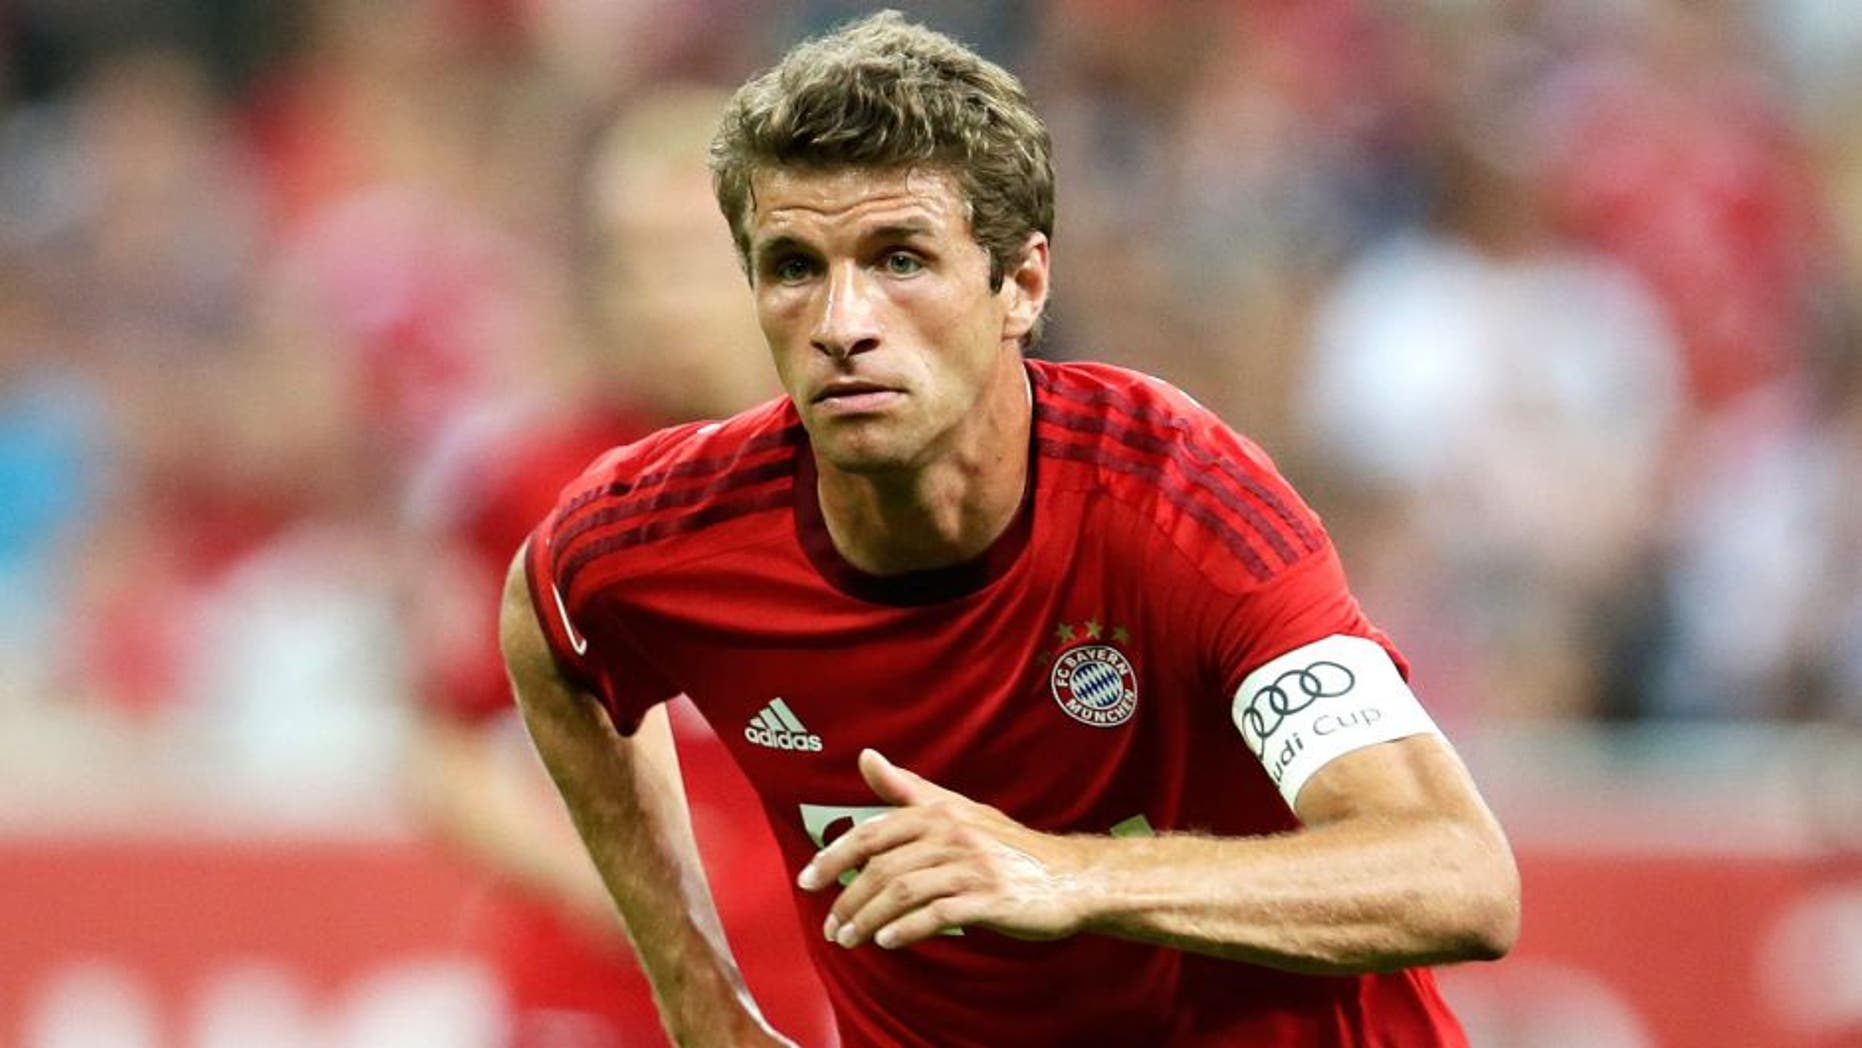 Thomas Muller of FC Bayern Munchen during the AUDI Cup match between FC Bayern Munich and AC Milan on August 4, 2015 at the Allianz Arena in Munich, Germany(Photo by VI Images via Getty Images)